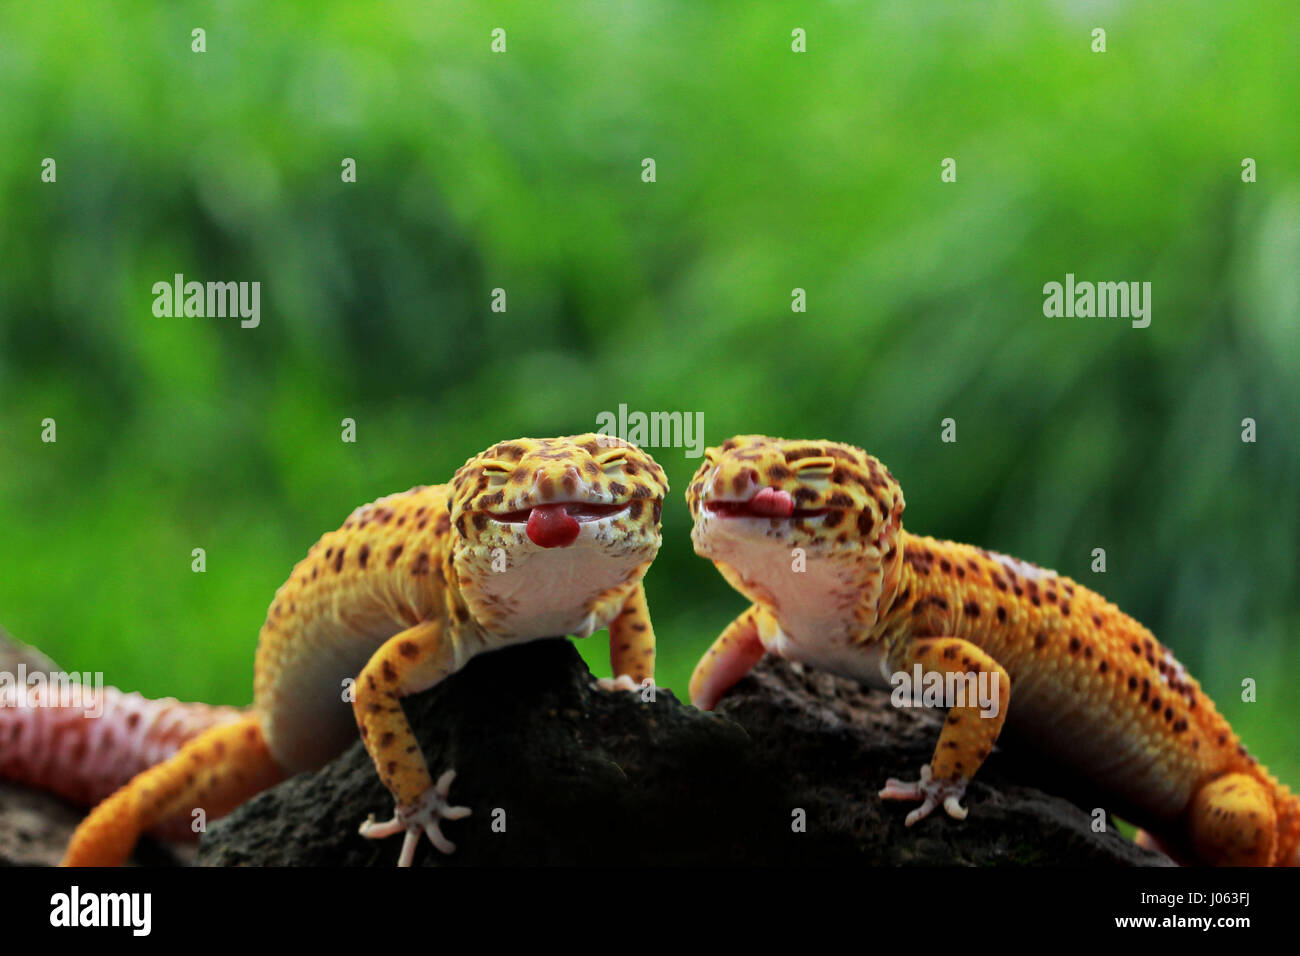 a pair of leopard geckos stick their tongues out for the camera